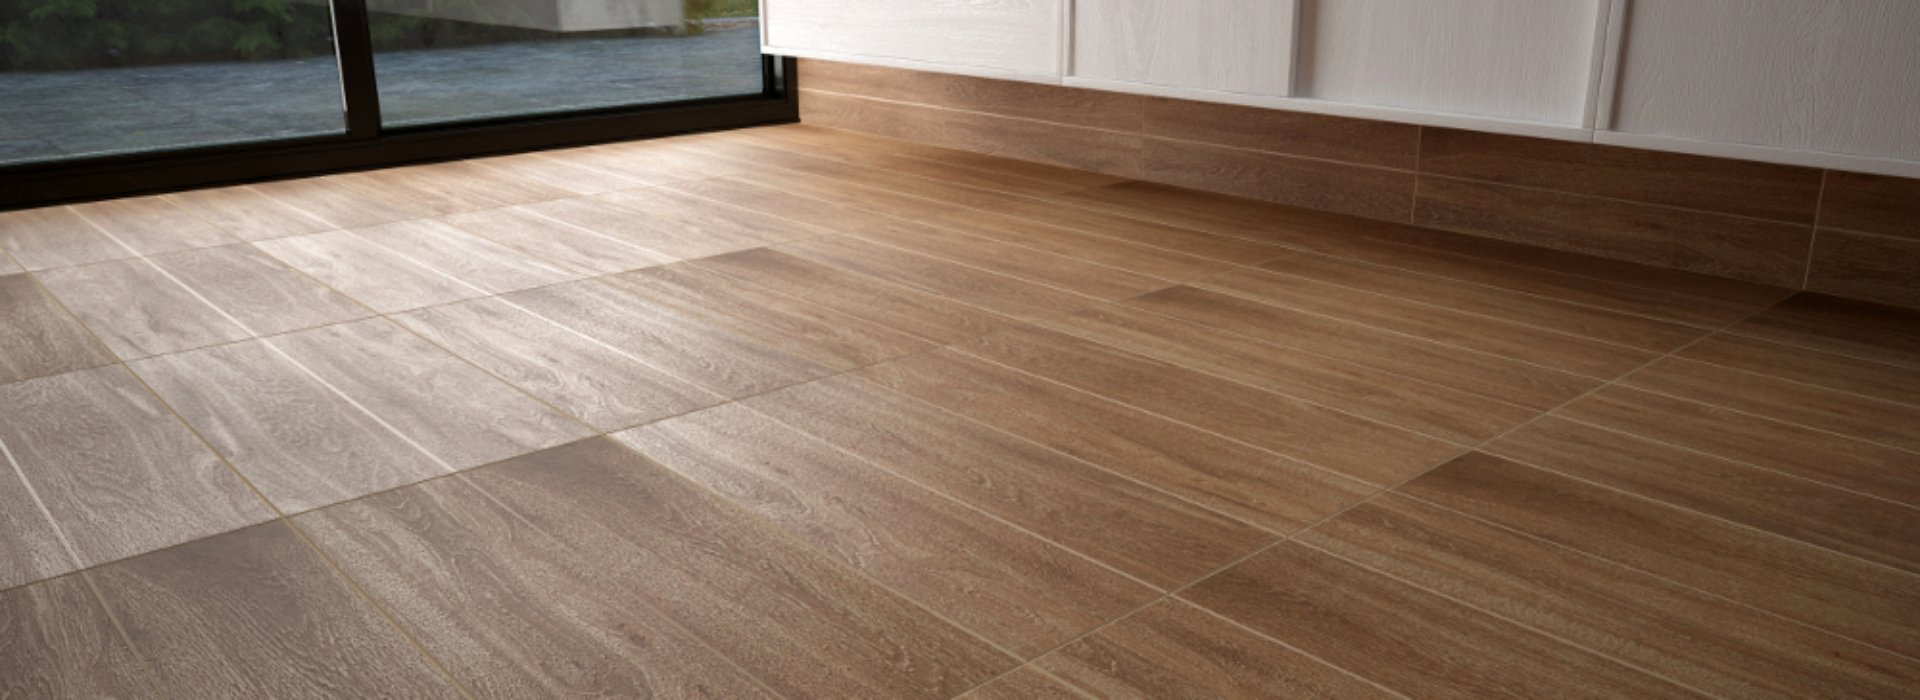 woodline bronze0003